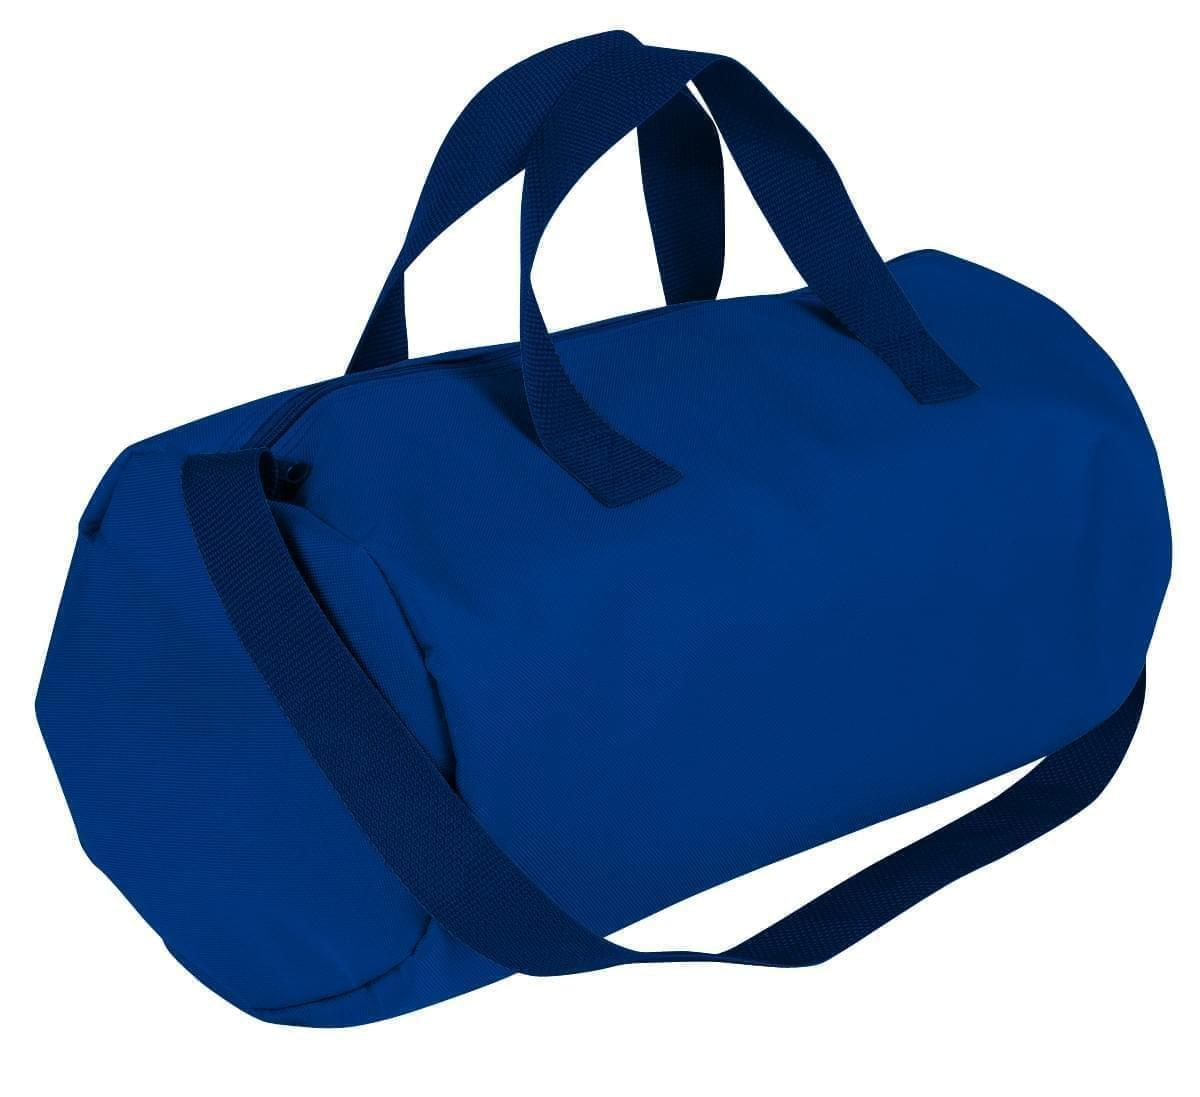 USA Made Nylon Poly Gym Roll Bags, Royal Blue-Navy, ROCX31AA0Z